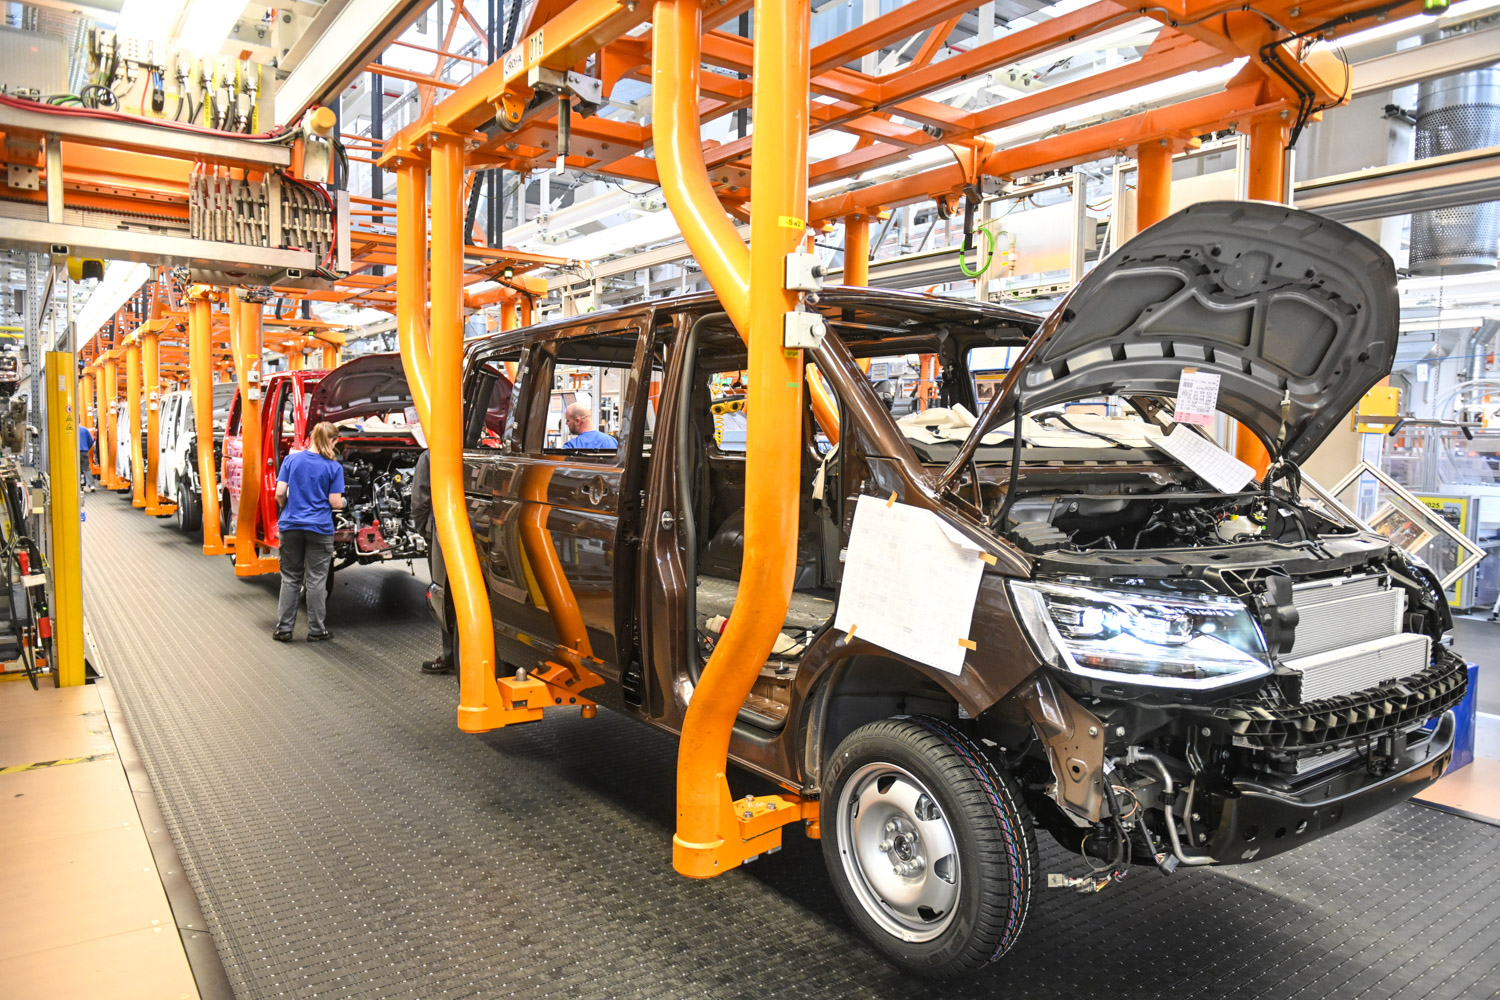 Car News | Volkswagen cautiously restarts European car production | CompleteCar.ie